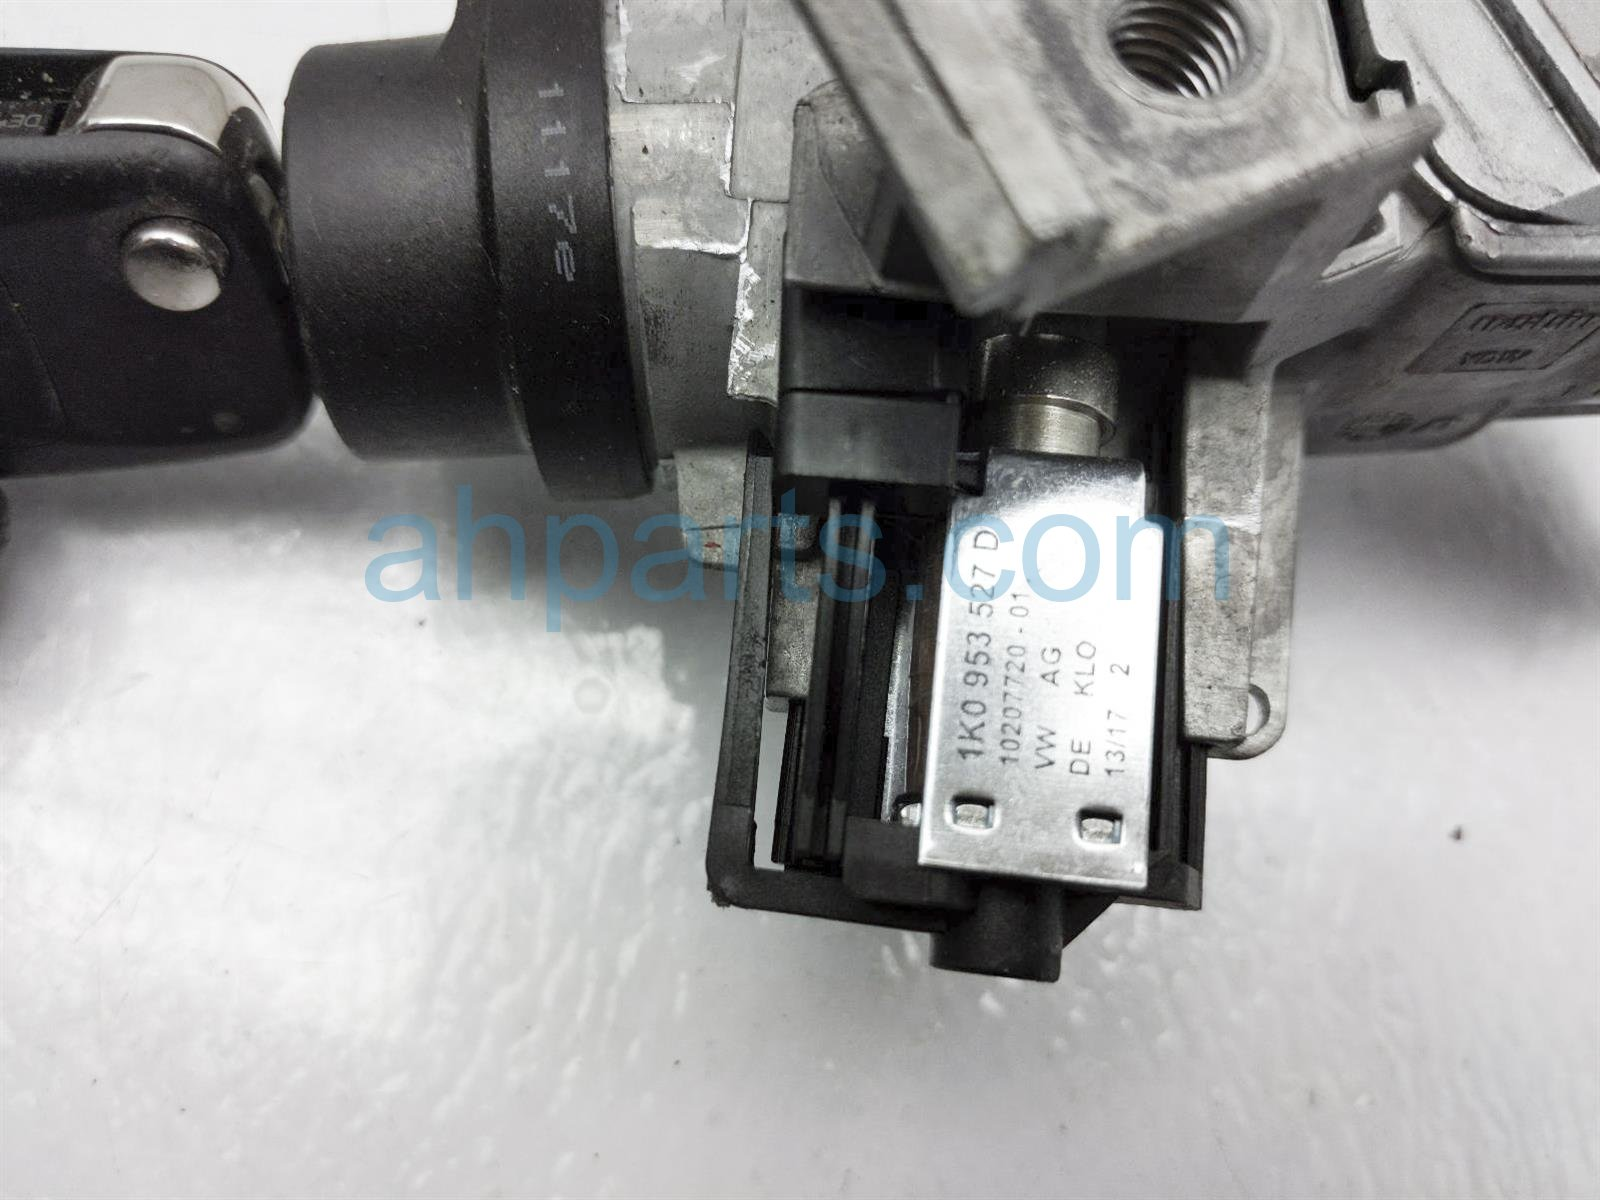 Sold 2018 Volkswagen Jetta Column At Ignition Switch + Key 5C6 905 841 Replacement